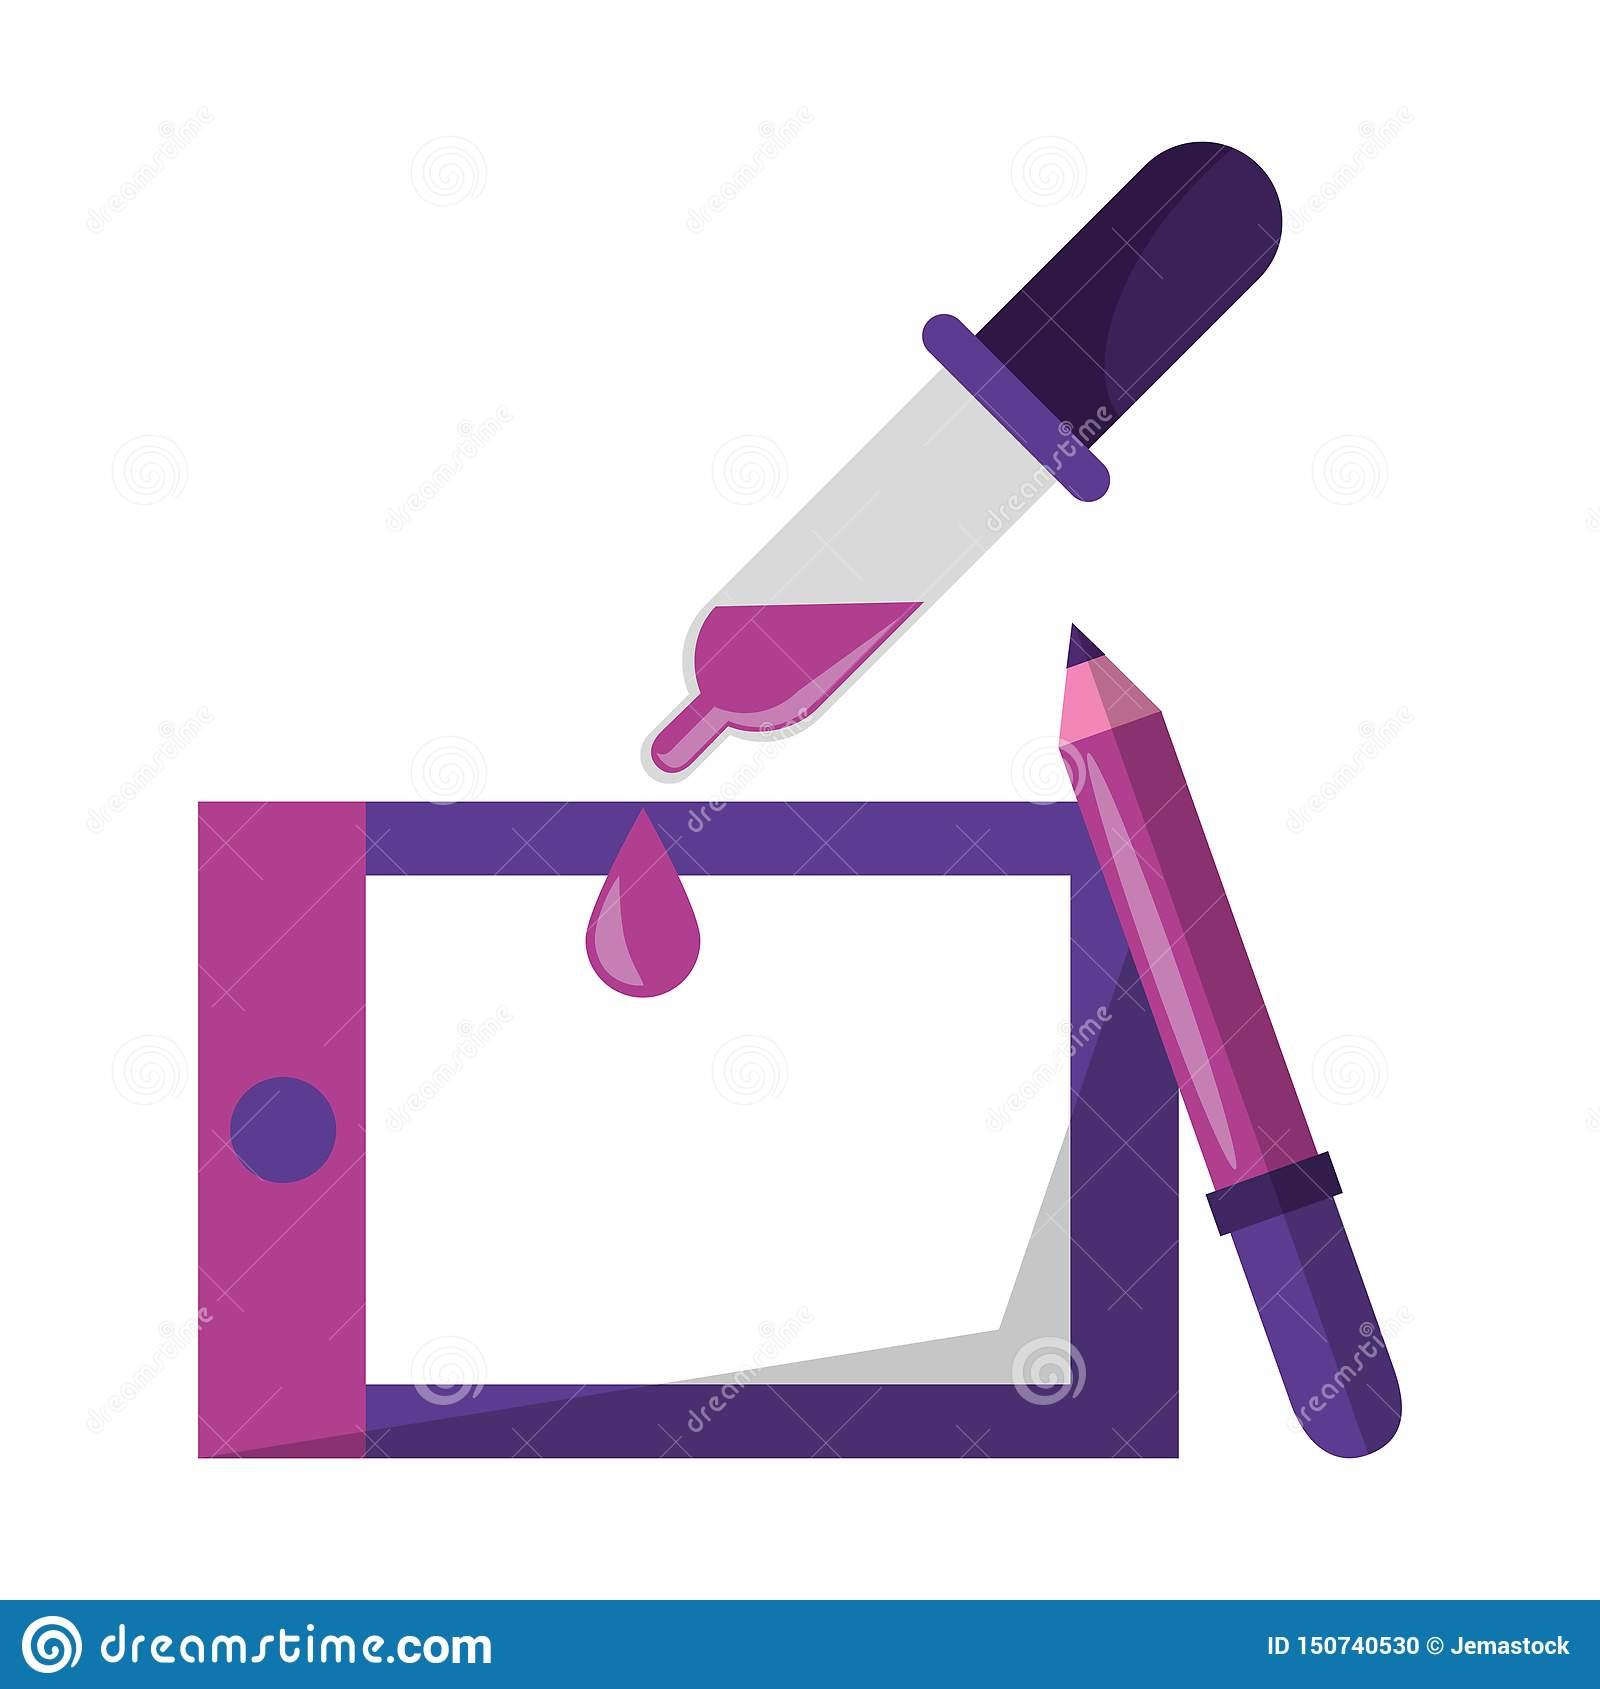 Vectors And Graphic Design Digital Tools Stock Vector Illustration Of Linear Creative 150740530